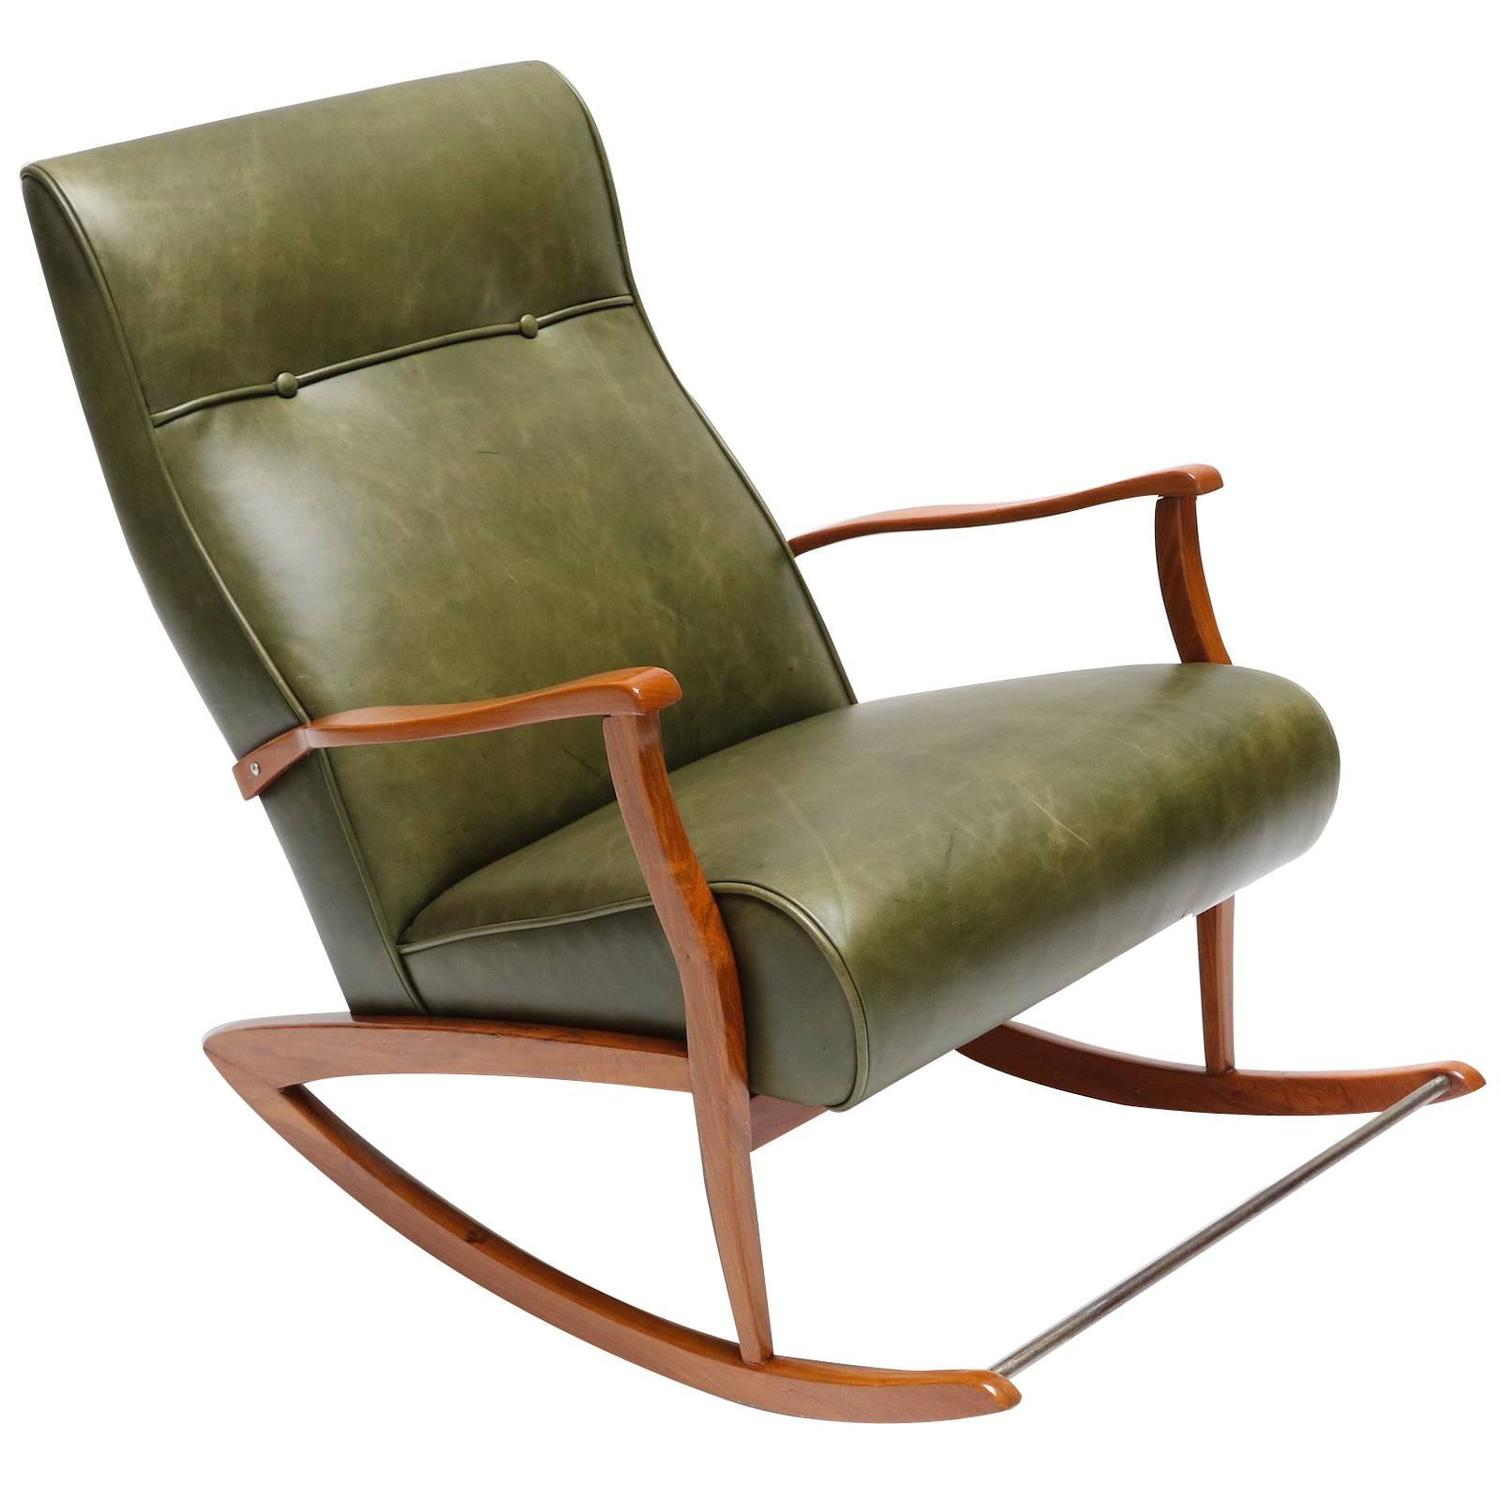 Leather Rocking Chairs 77 For Sale at 1stdibs